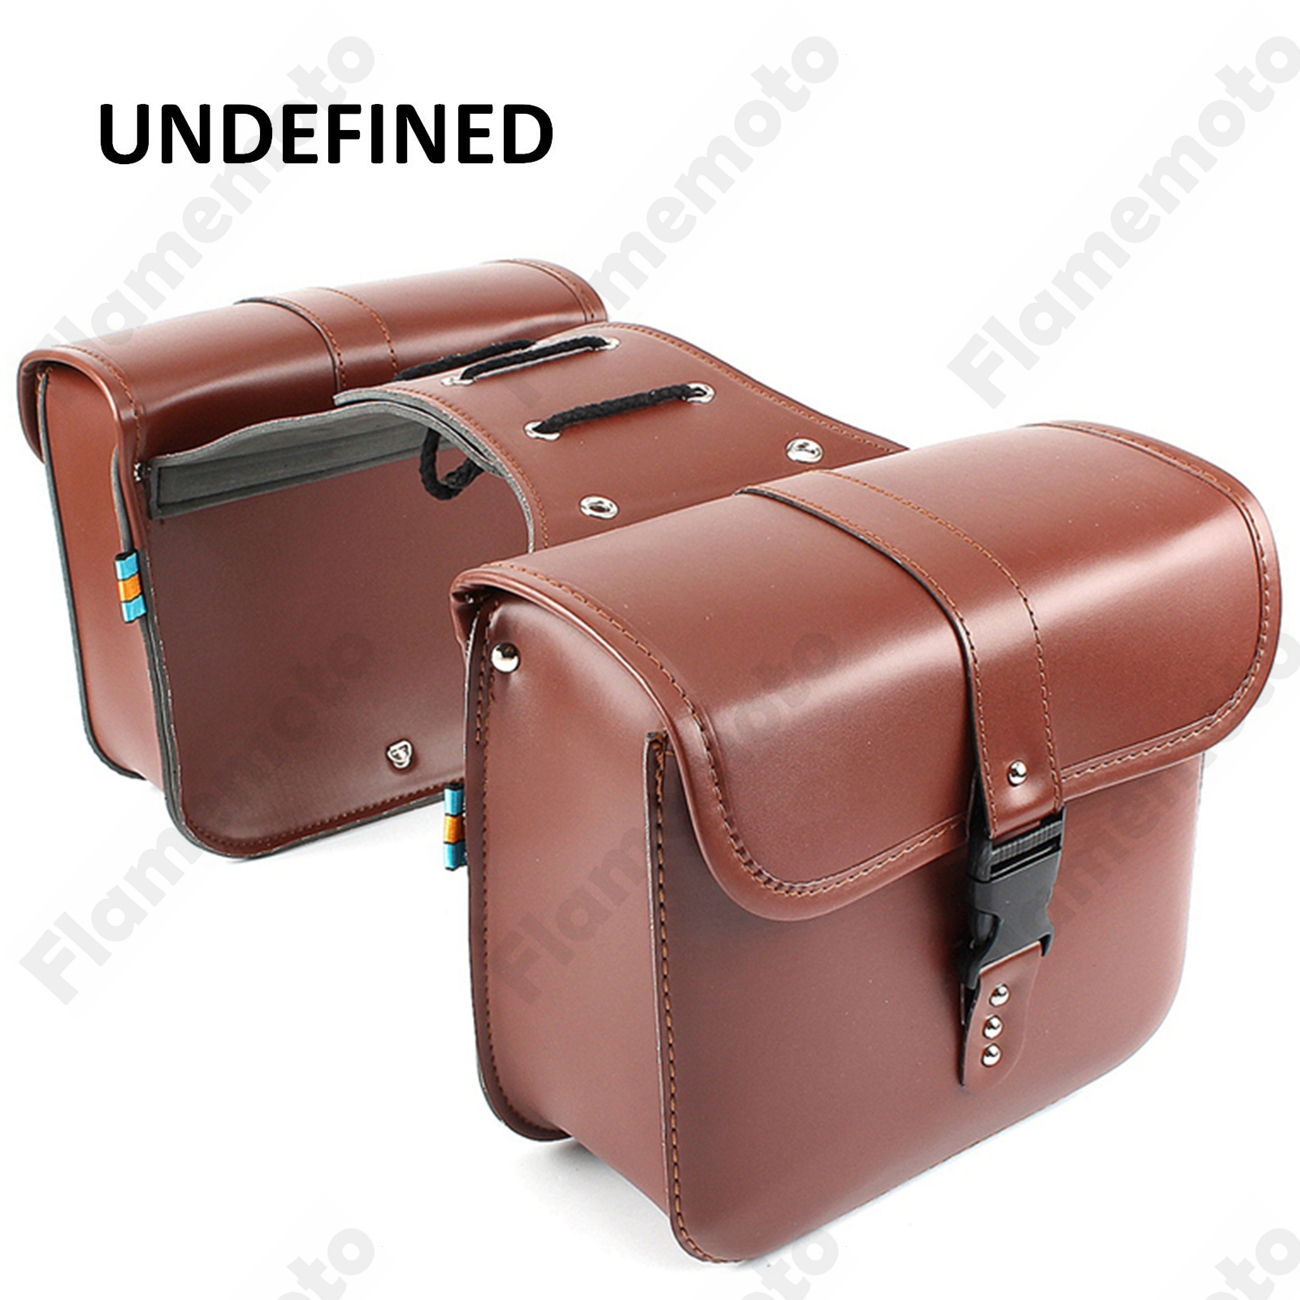 Universal Especially Motorbike Accessories Side Saddle Bag Tool Luggage Pannier Brown PU Leather Motorcycle UNDEFINED цена